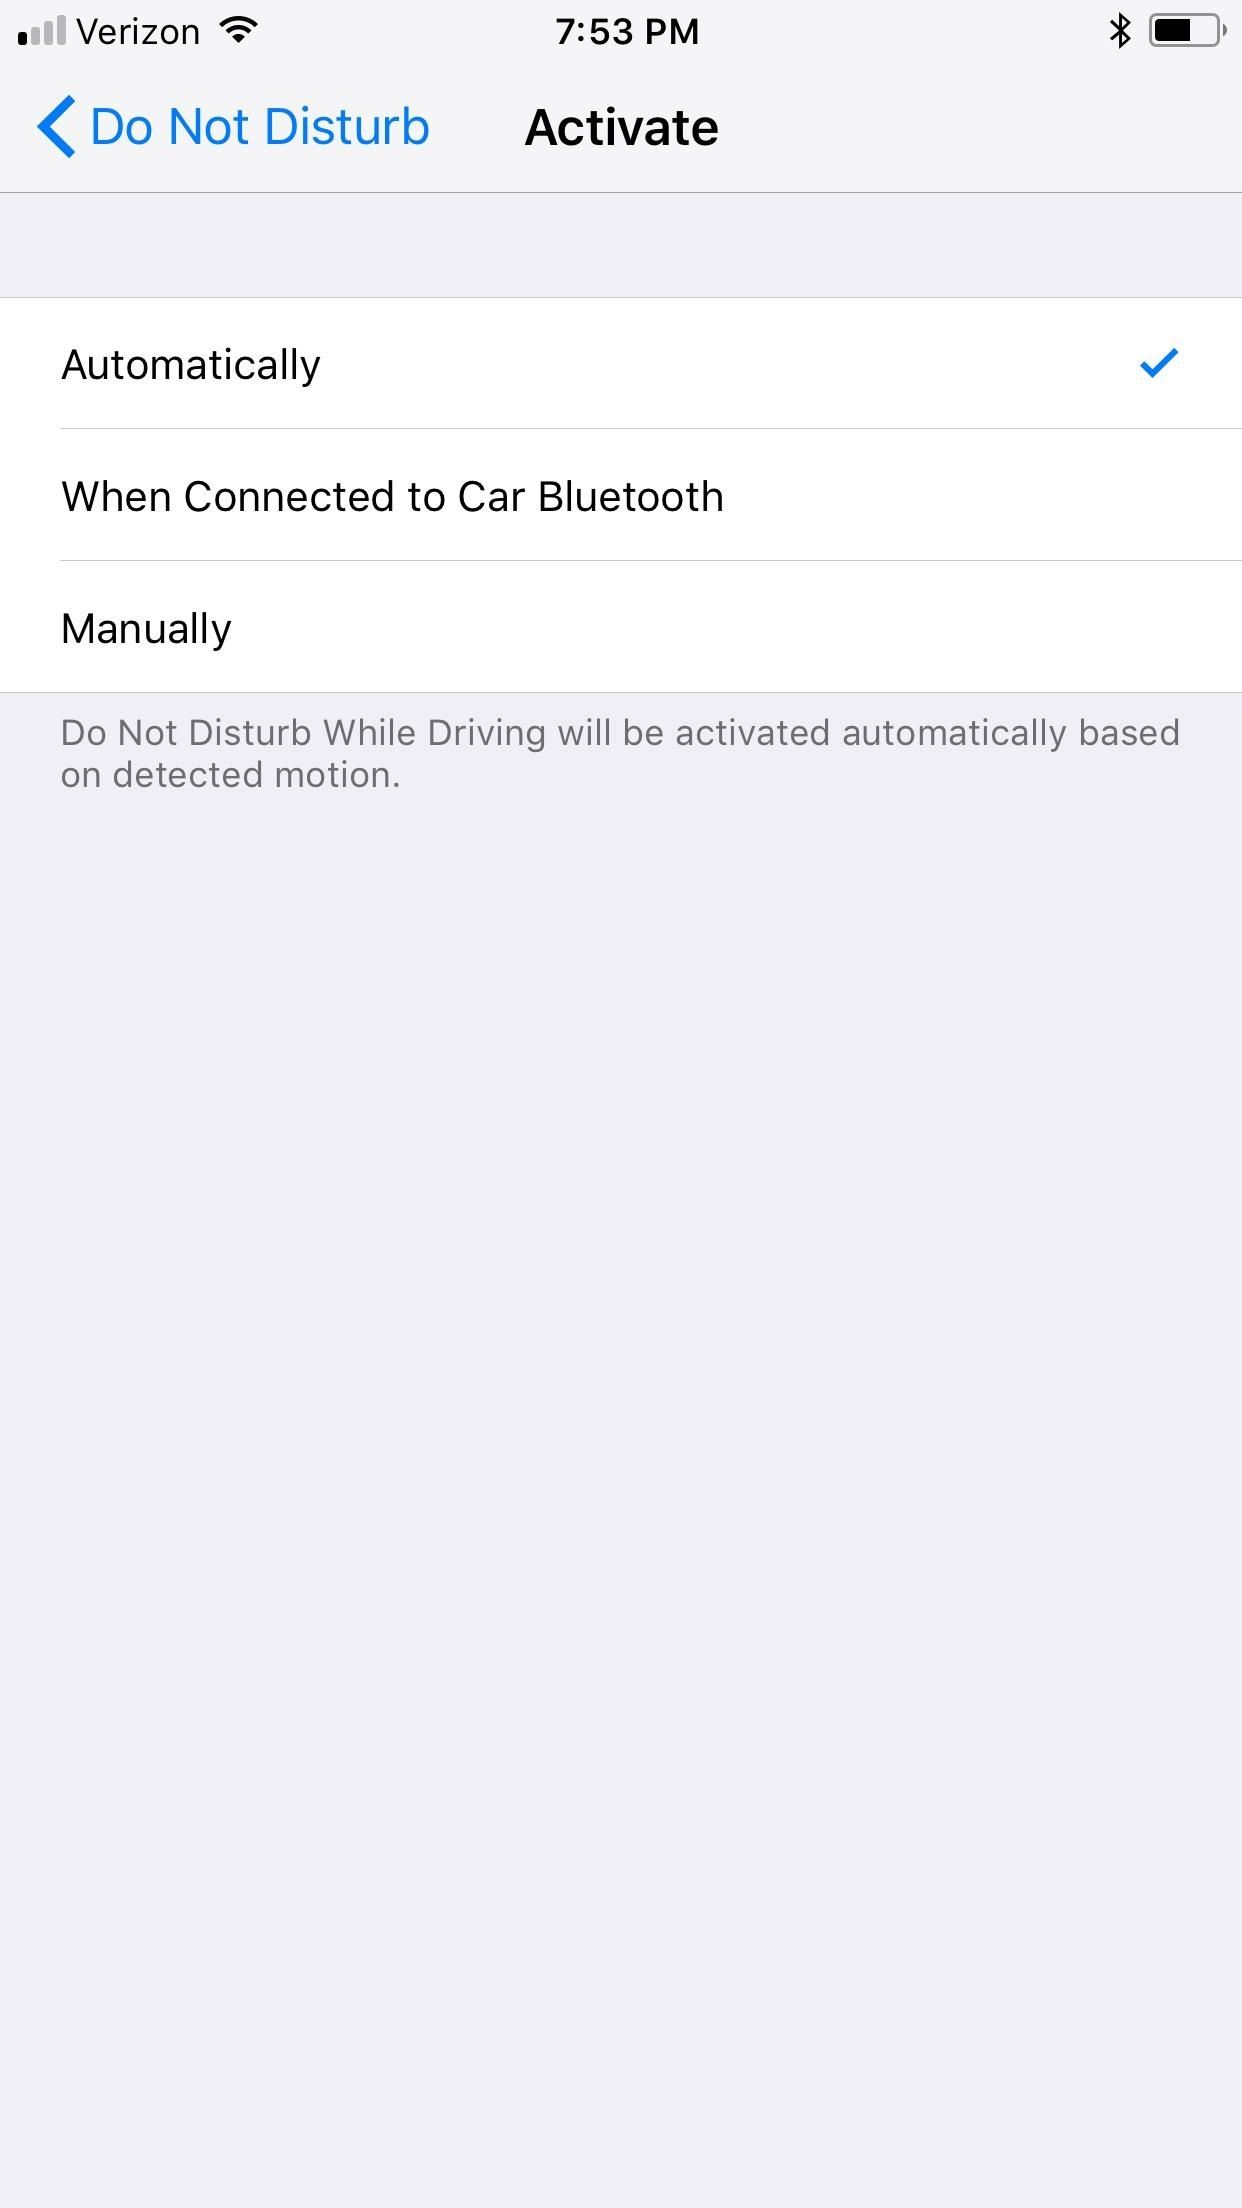 How to Use 'Do Not Disturb While Driving' on Your iPhone in iOS 11 (Or Turn It Off if You Don't Like It)